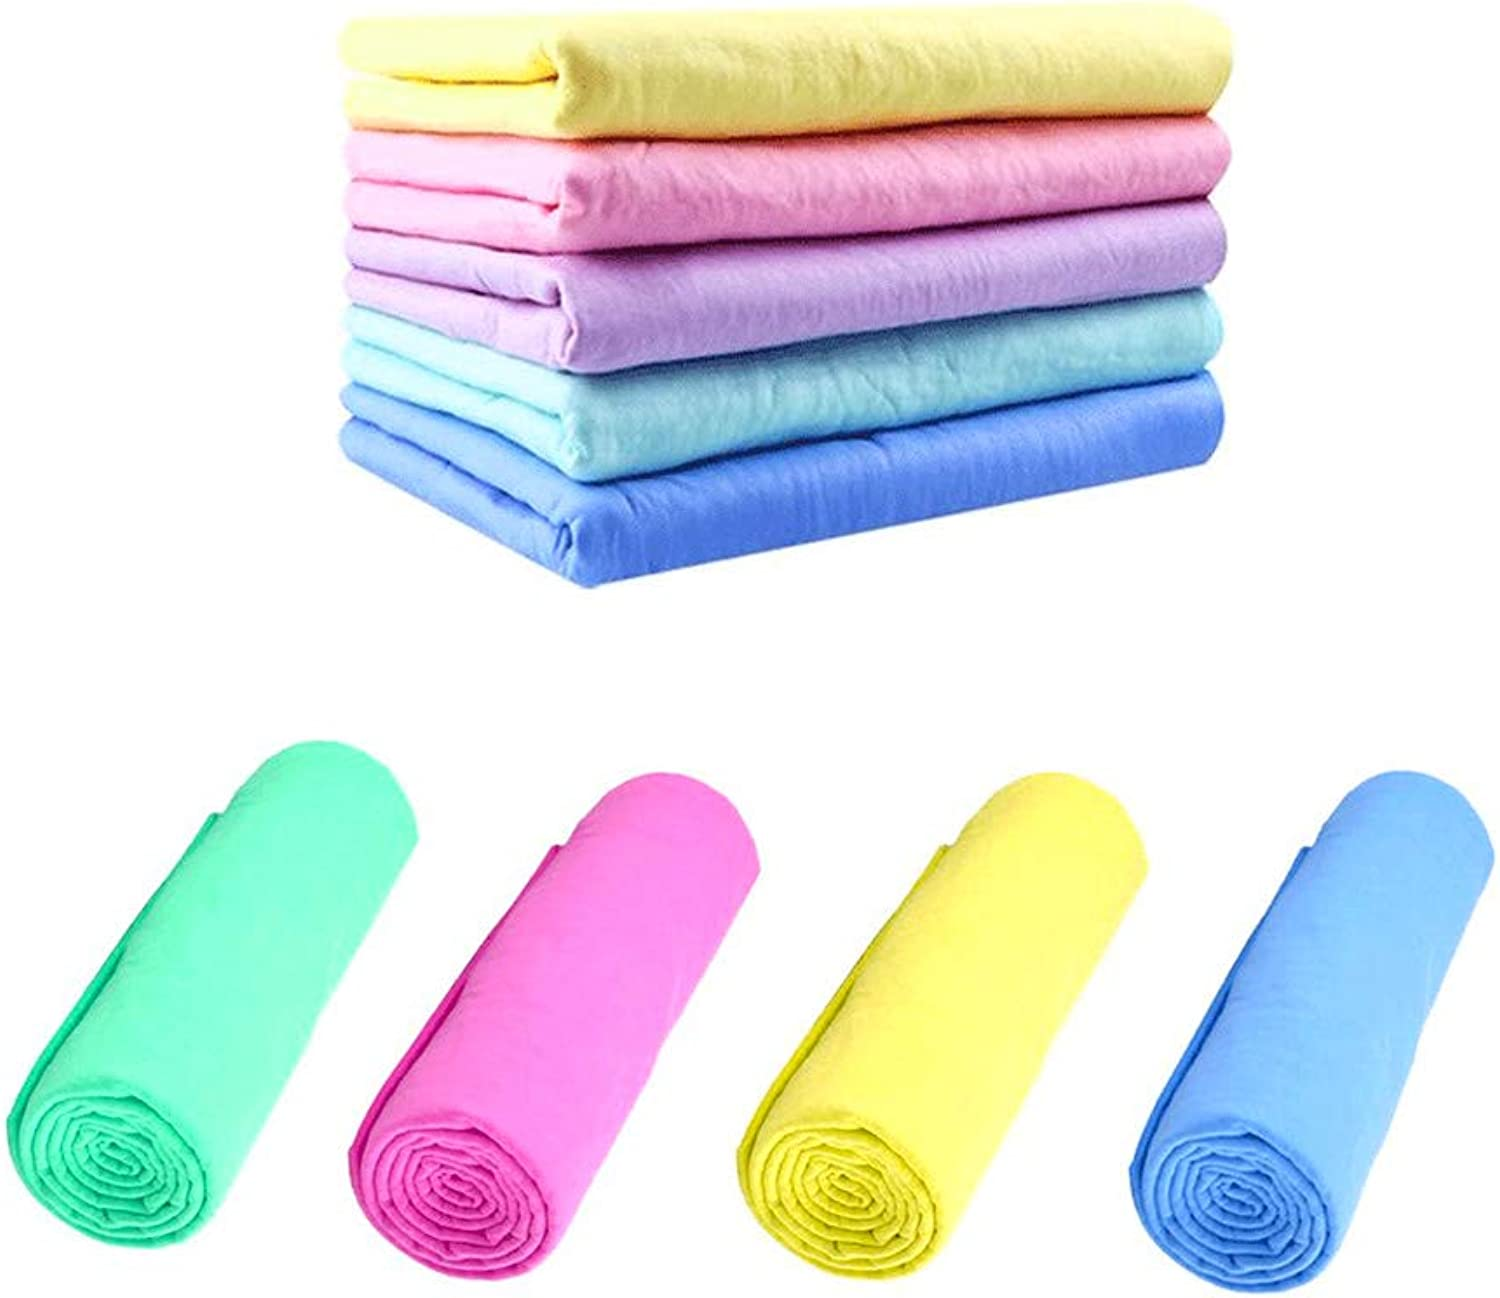 Nexxxi 2 Pack Pet Towels Super Absorbent PVA Bath Chamois for Cats and Dogs